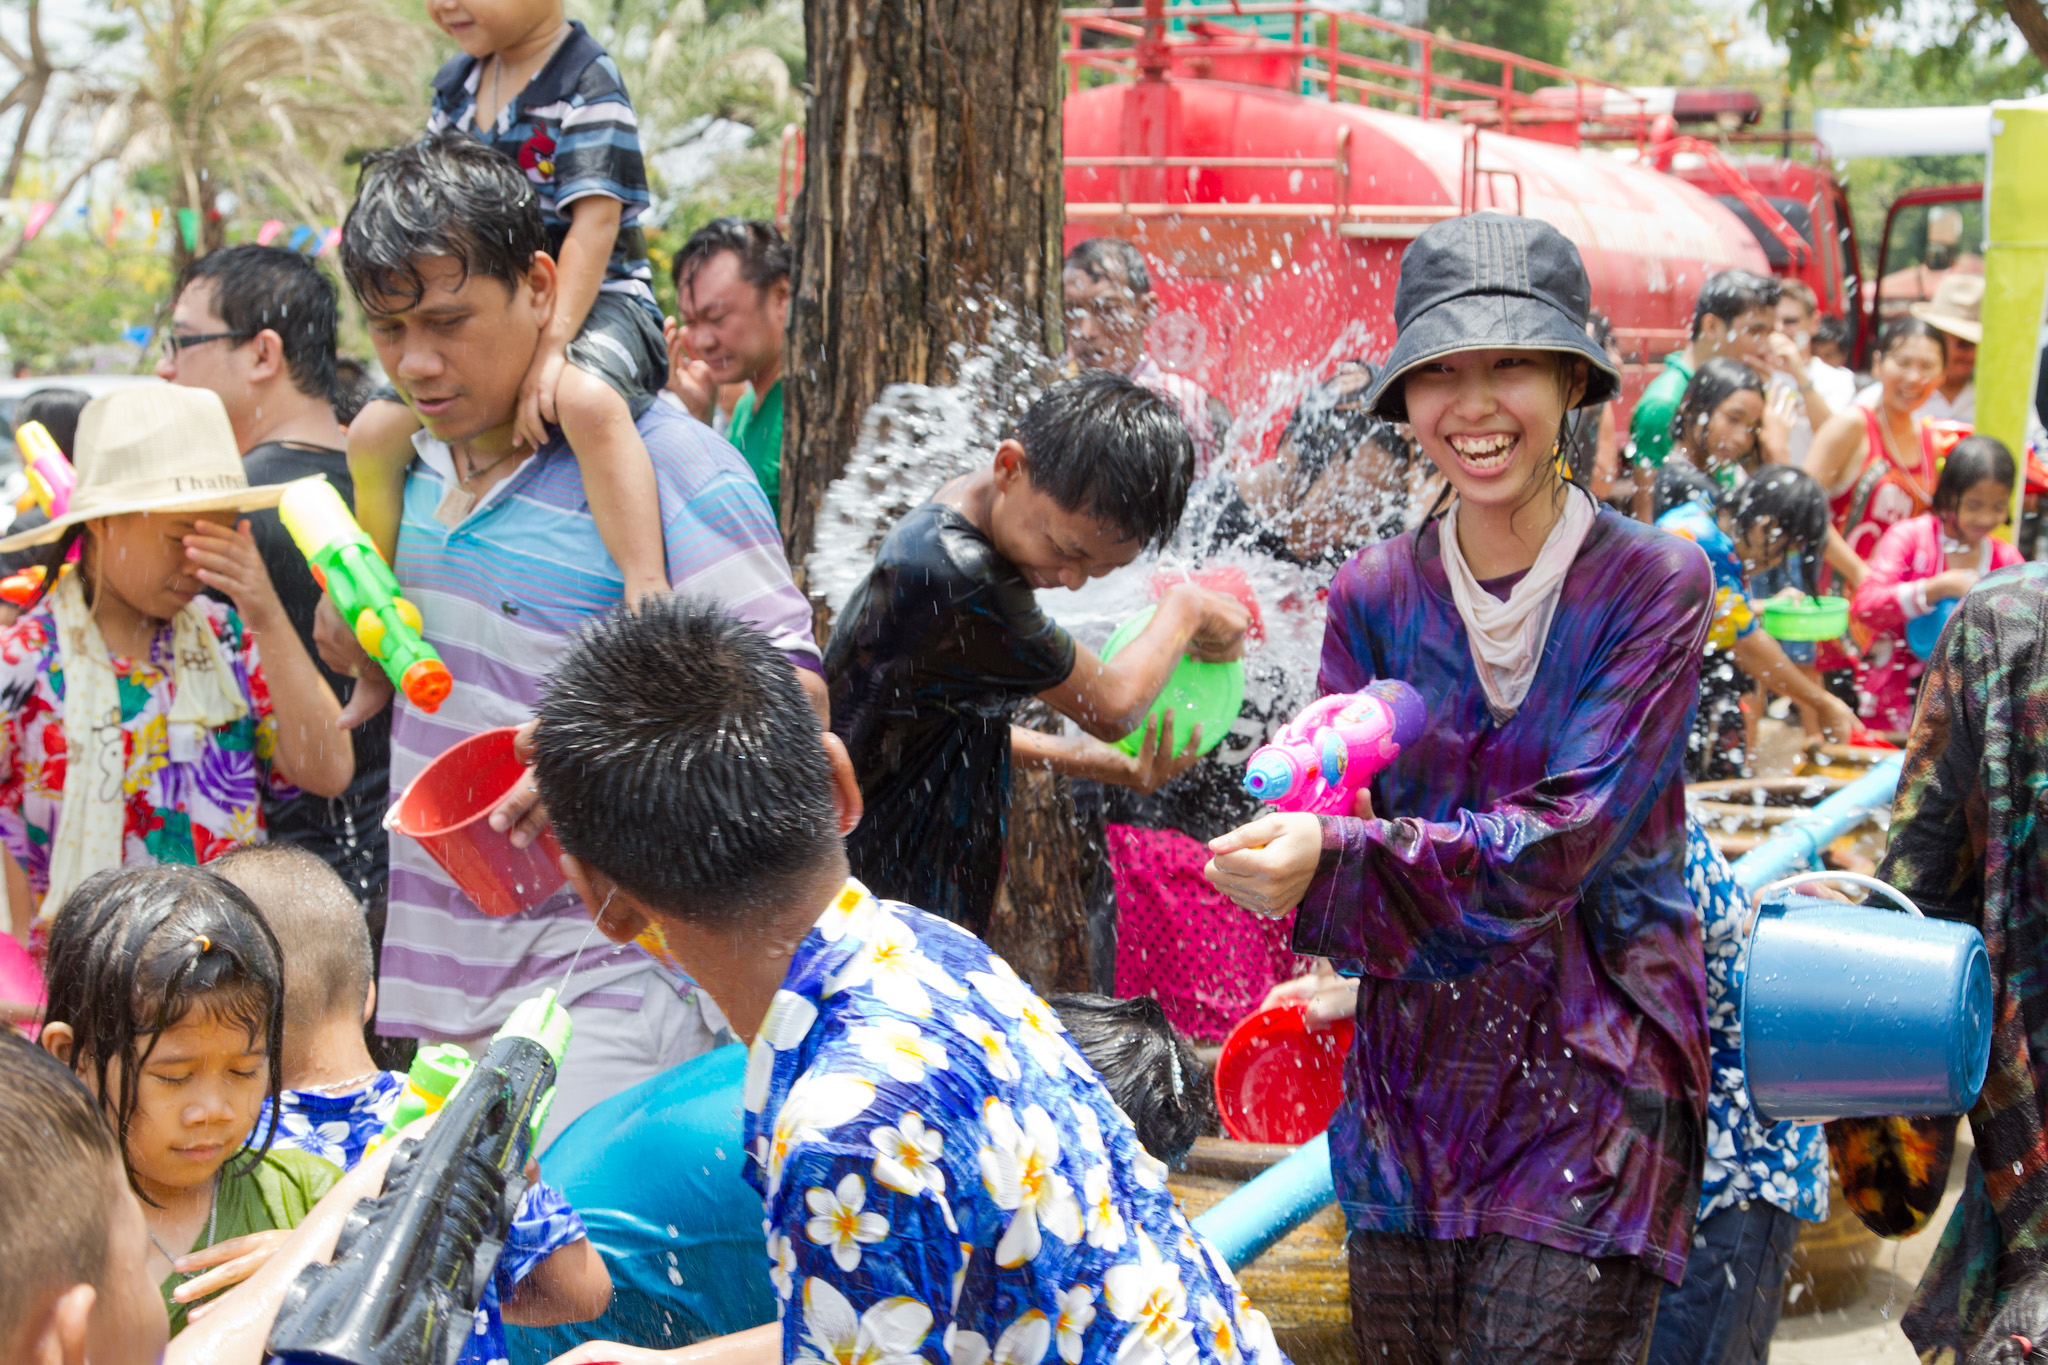 We were skeptical at first, but Songkran turned out to be a blast.